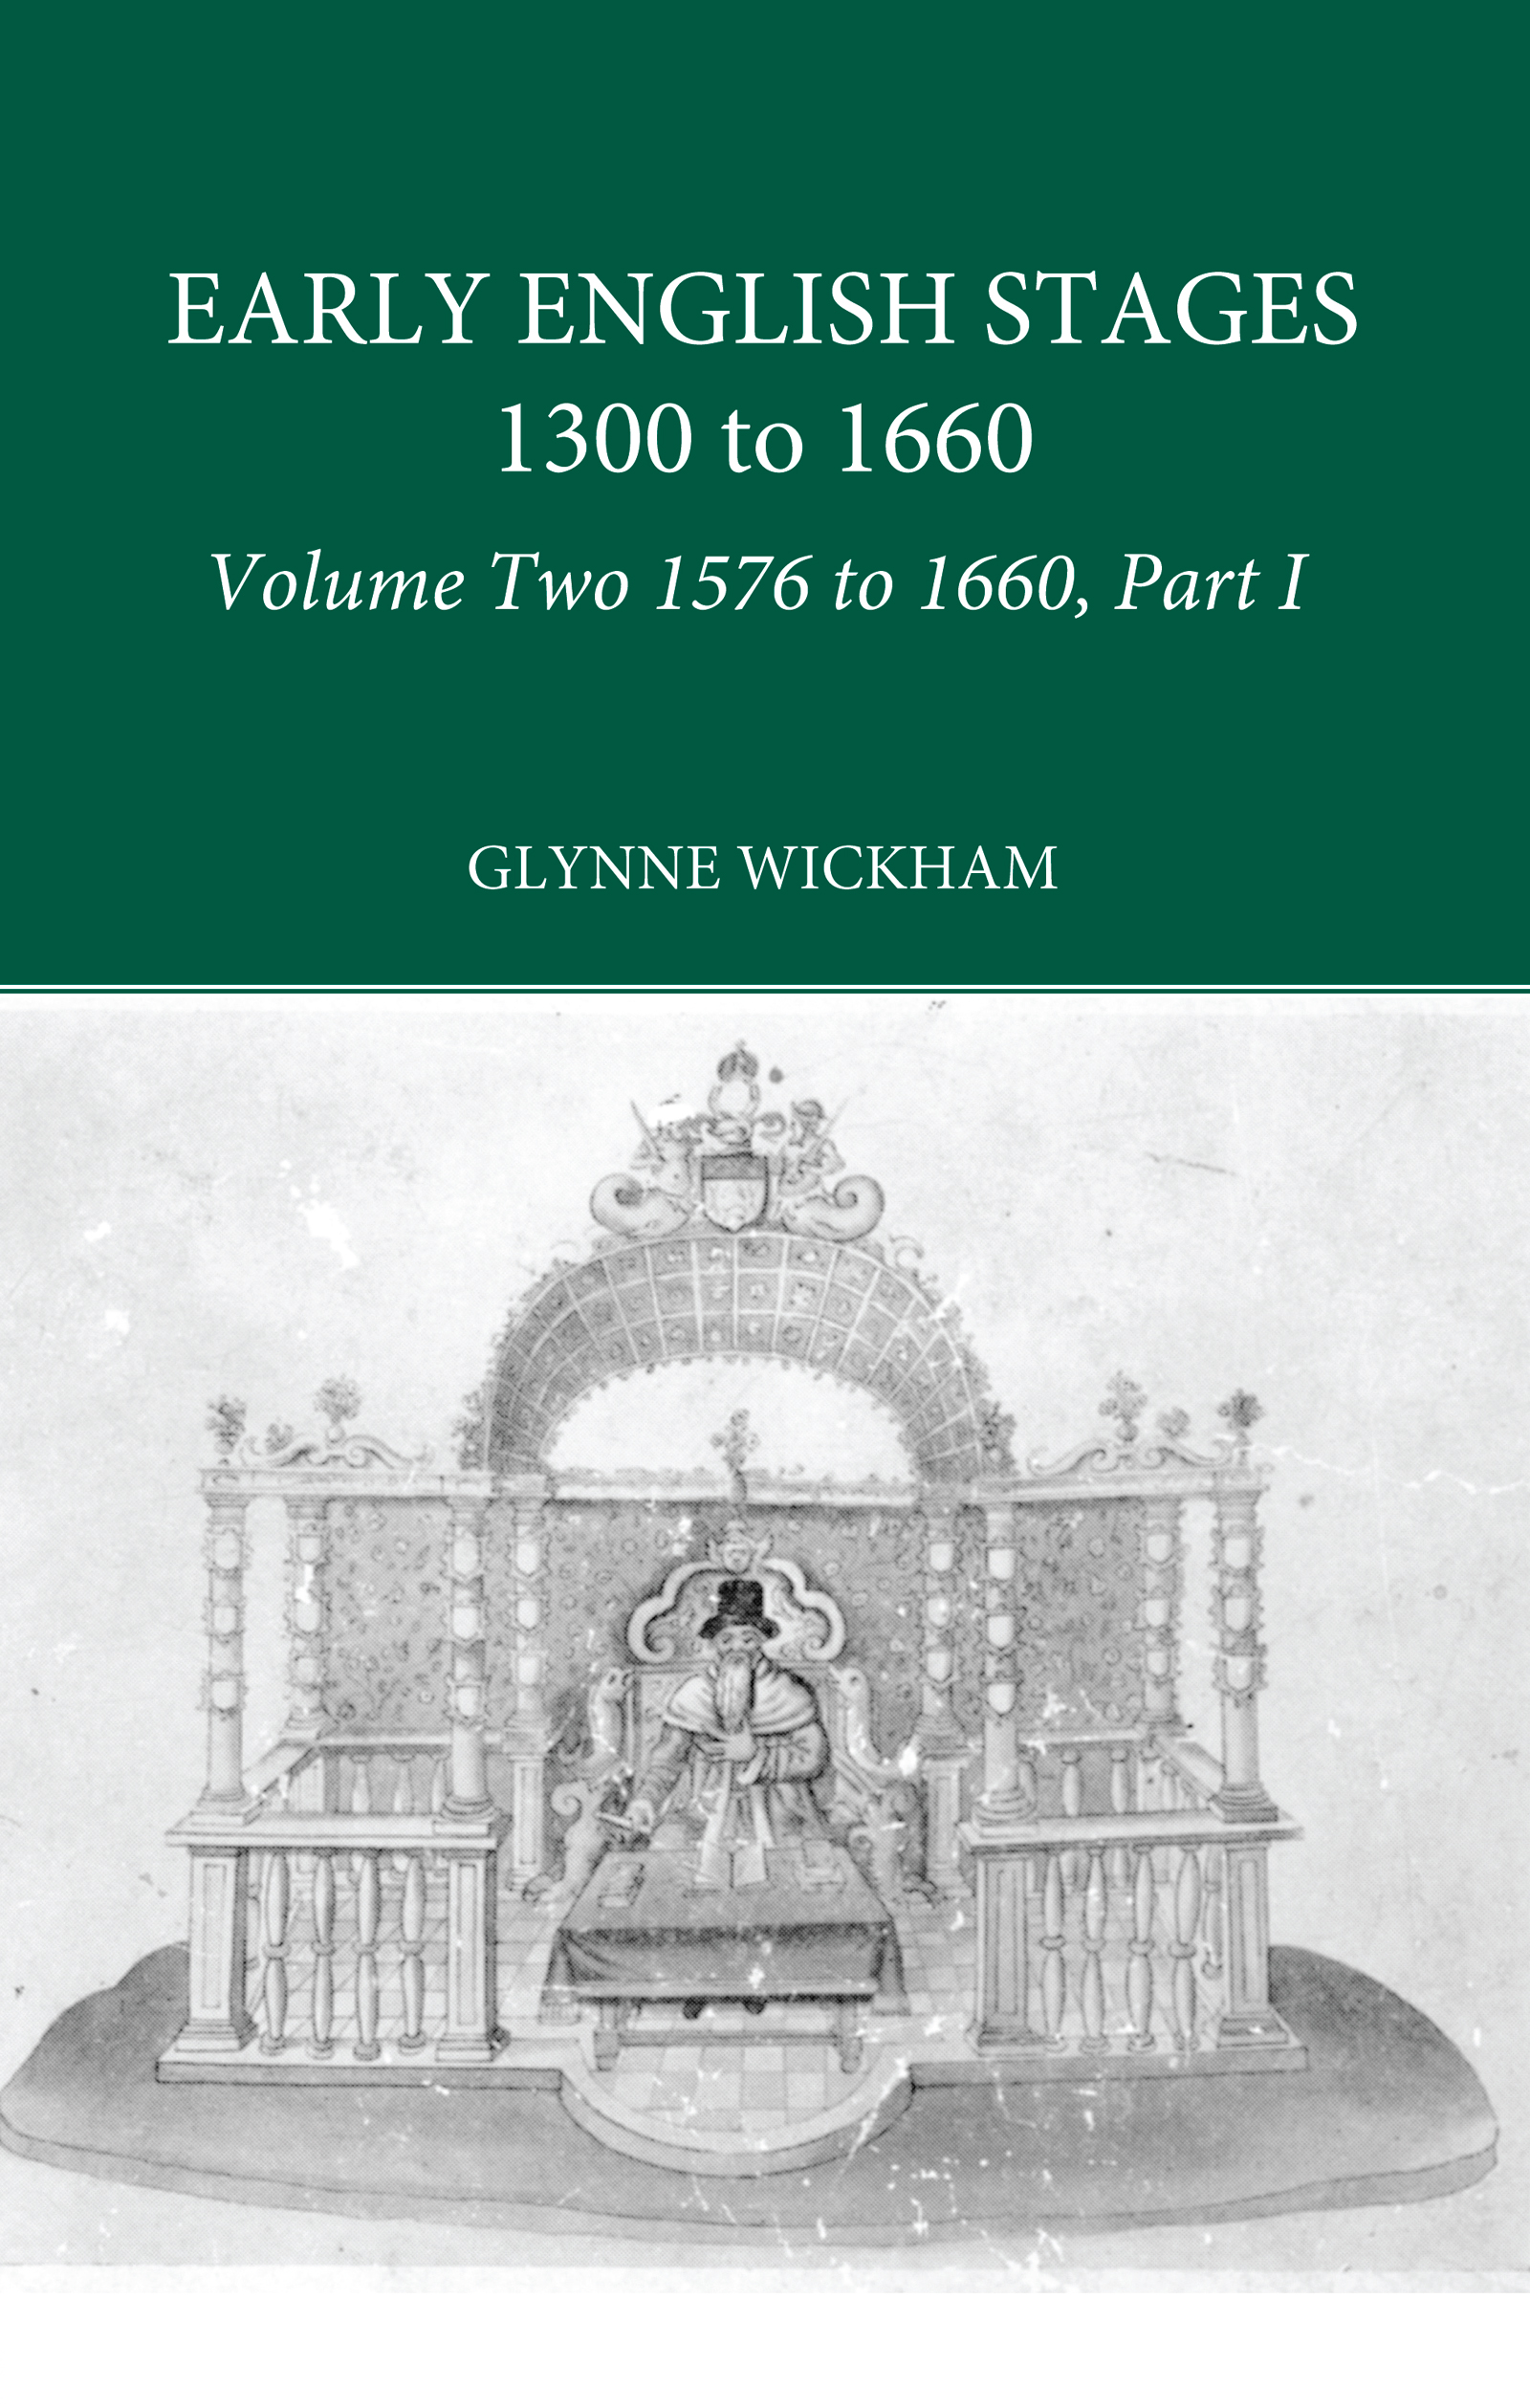 Part I - Early English Stages 1576-1600